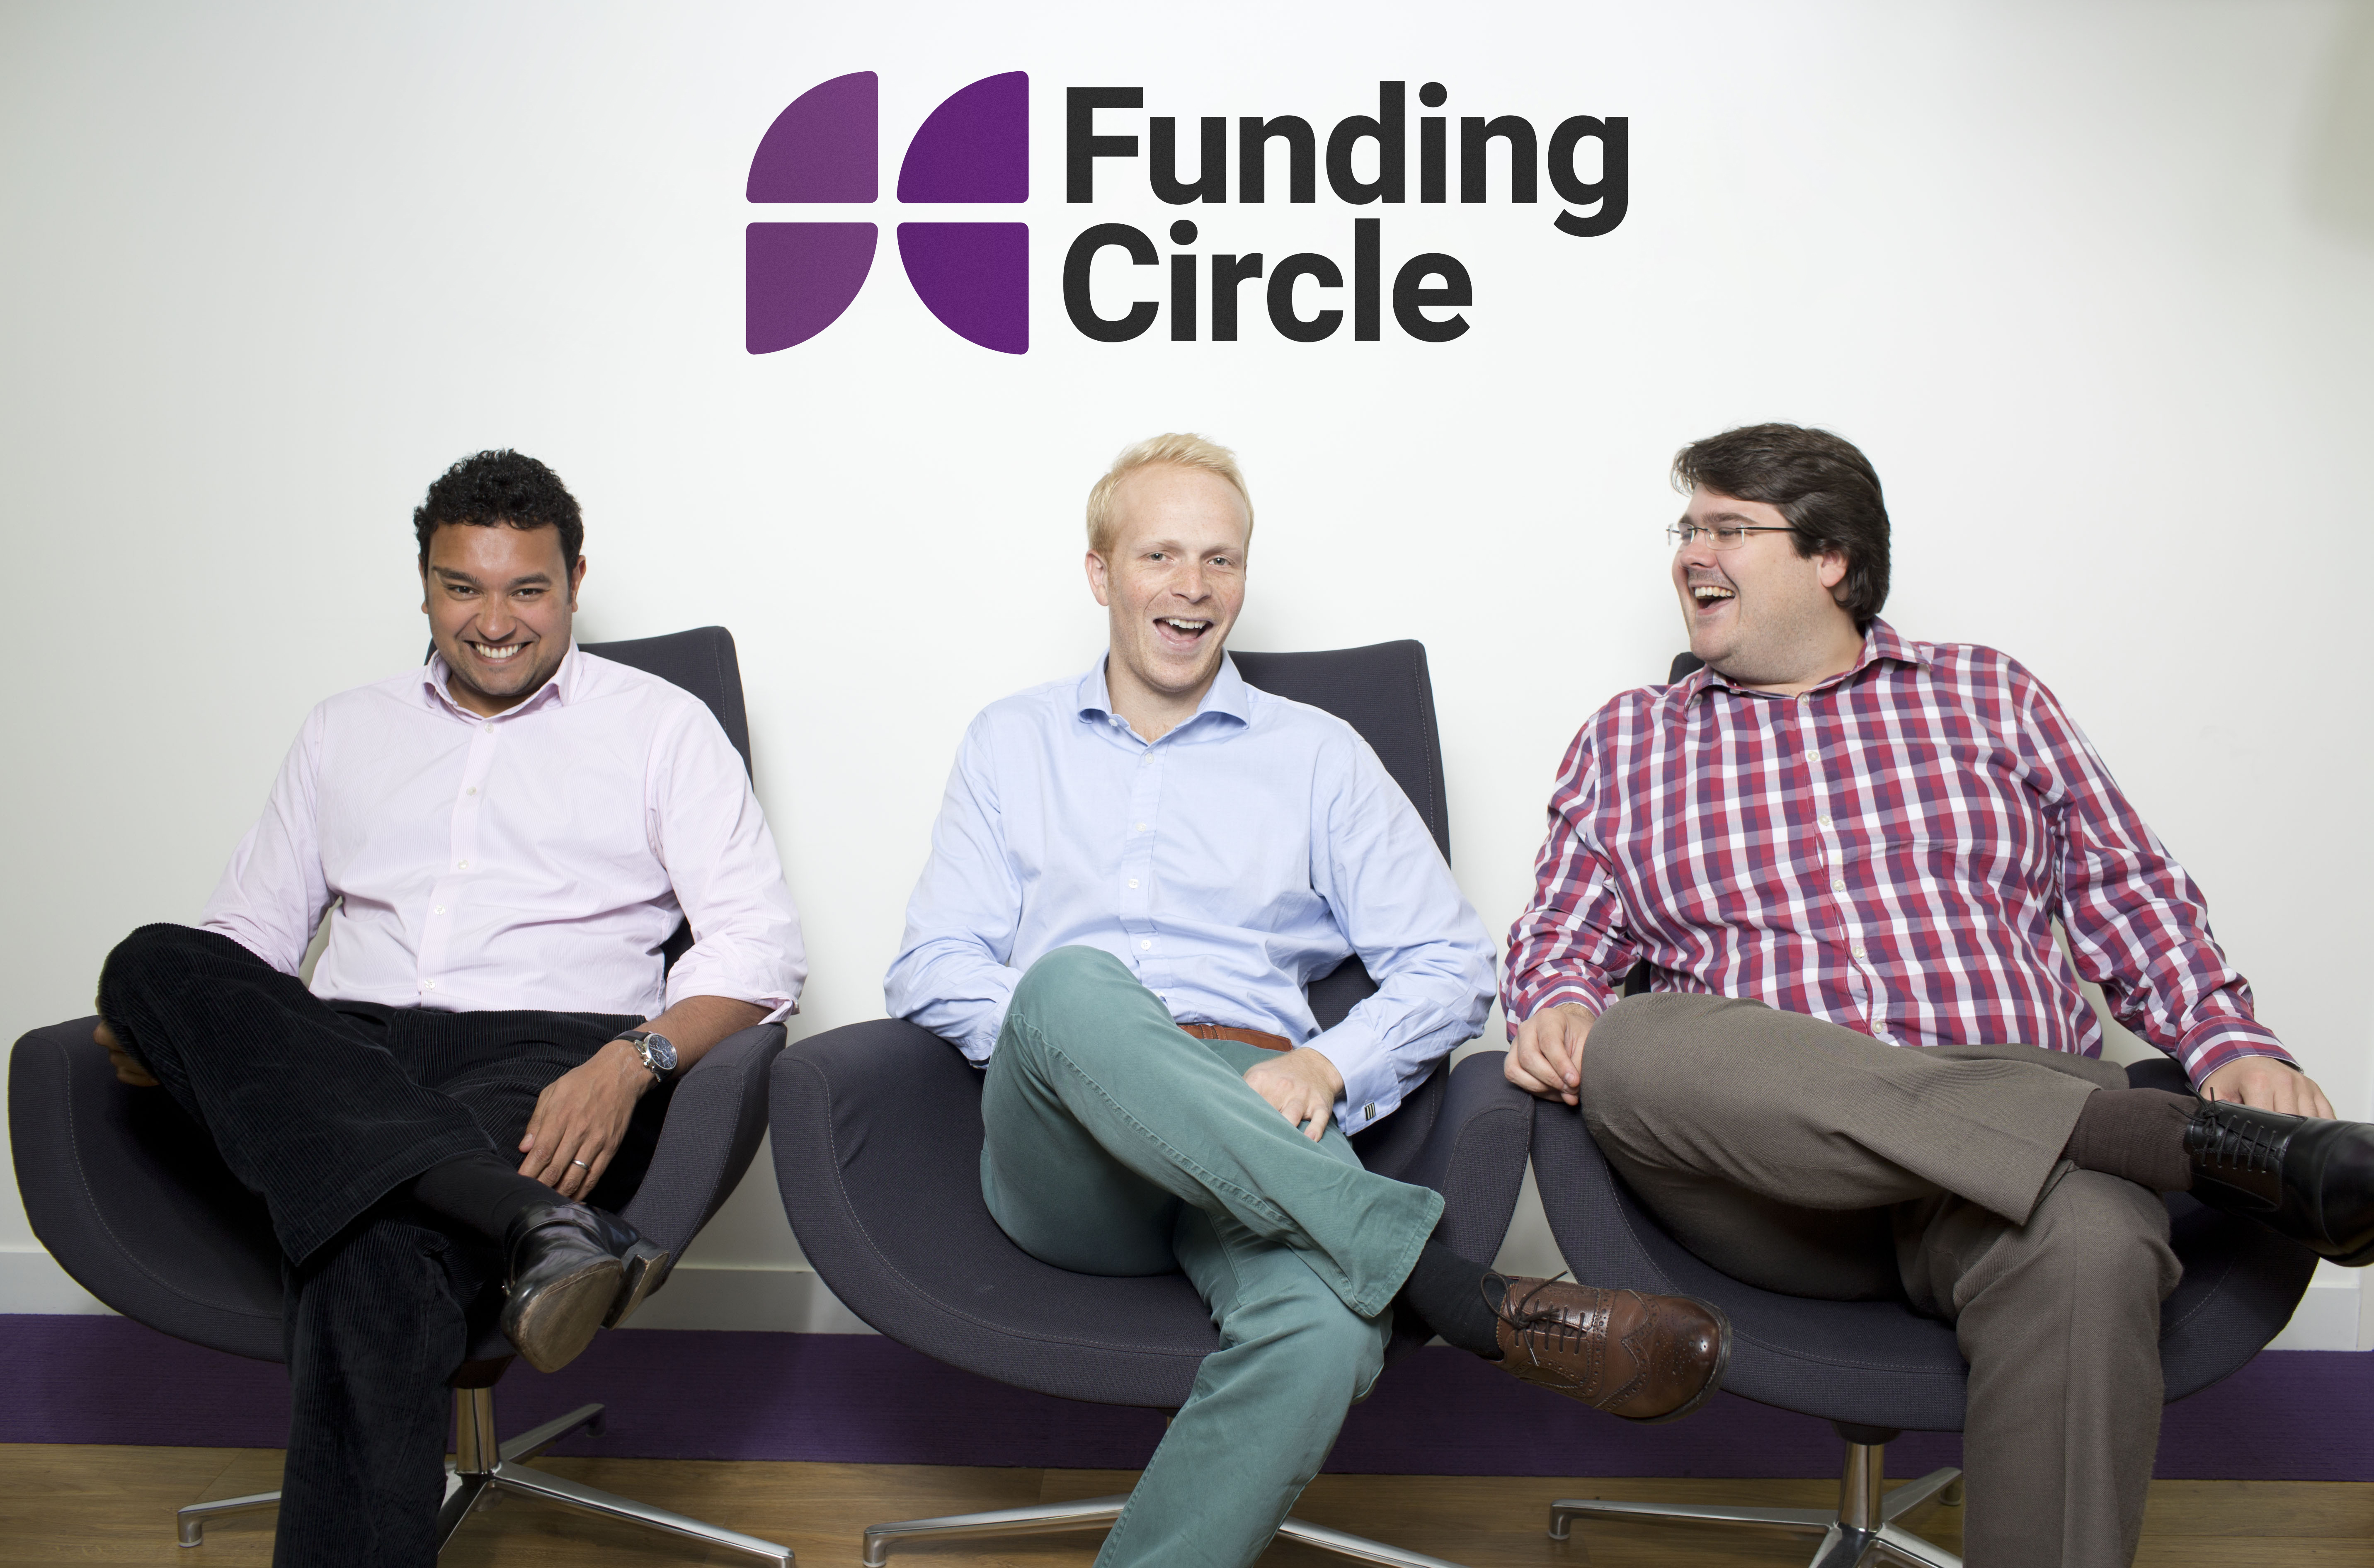 Funding Circle's IPO: The Founder Factor